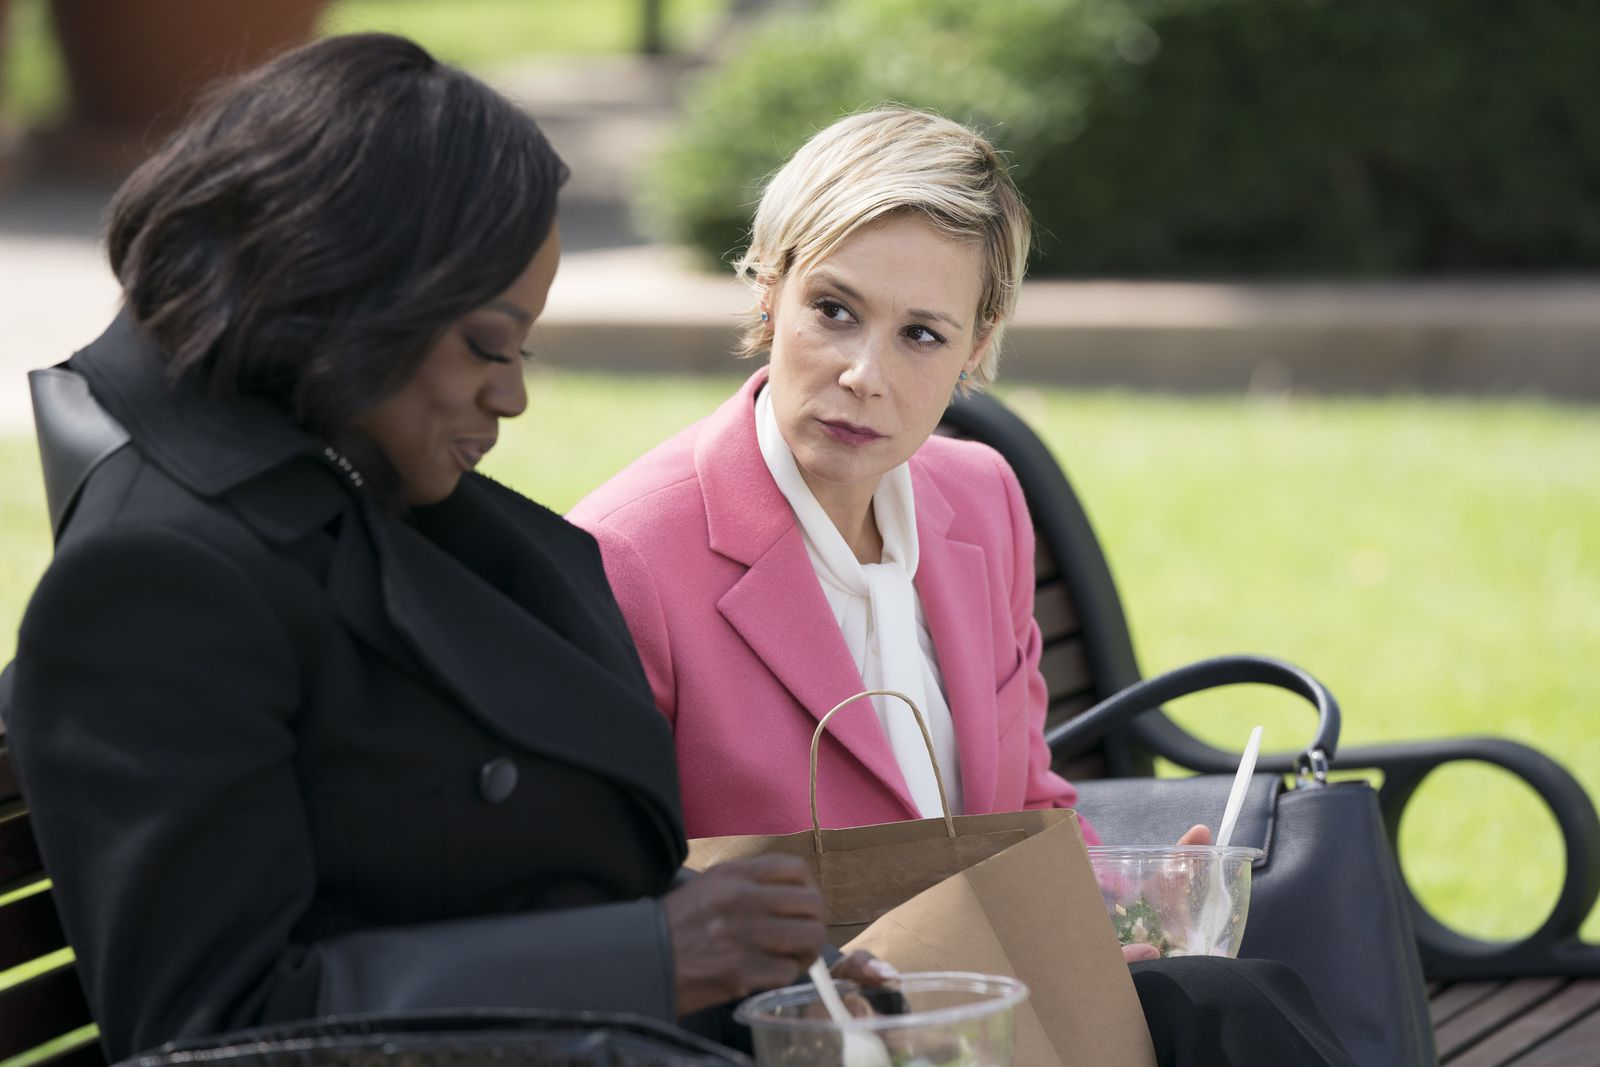 How to get away with murder, relation toxique